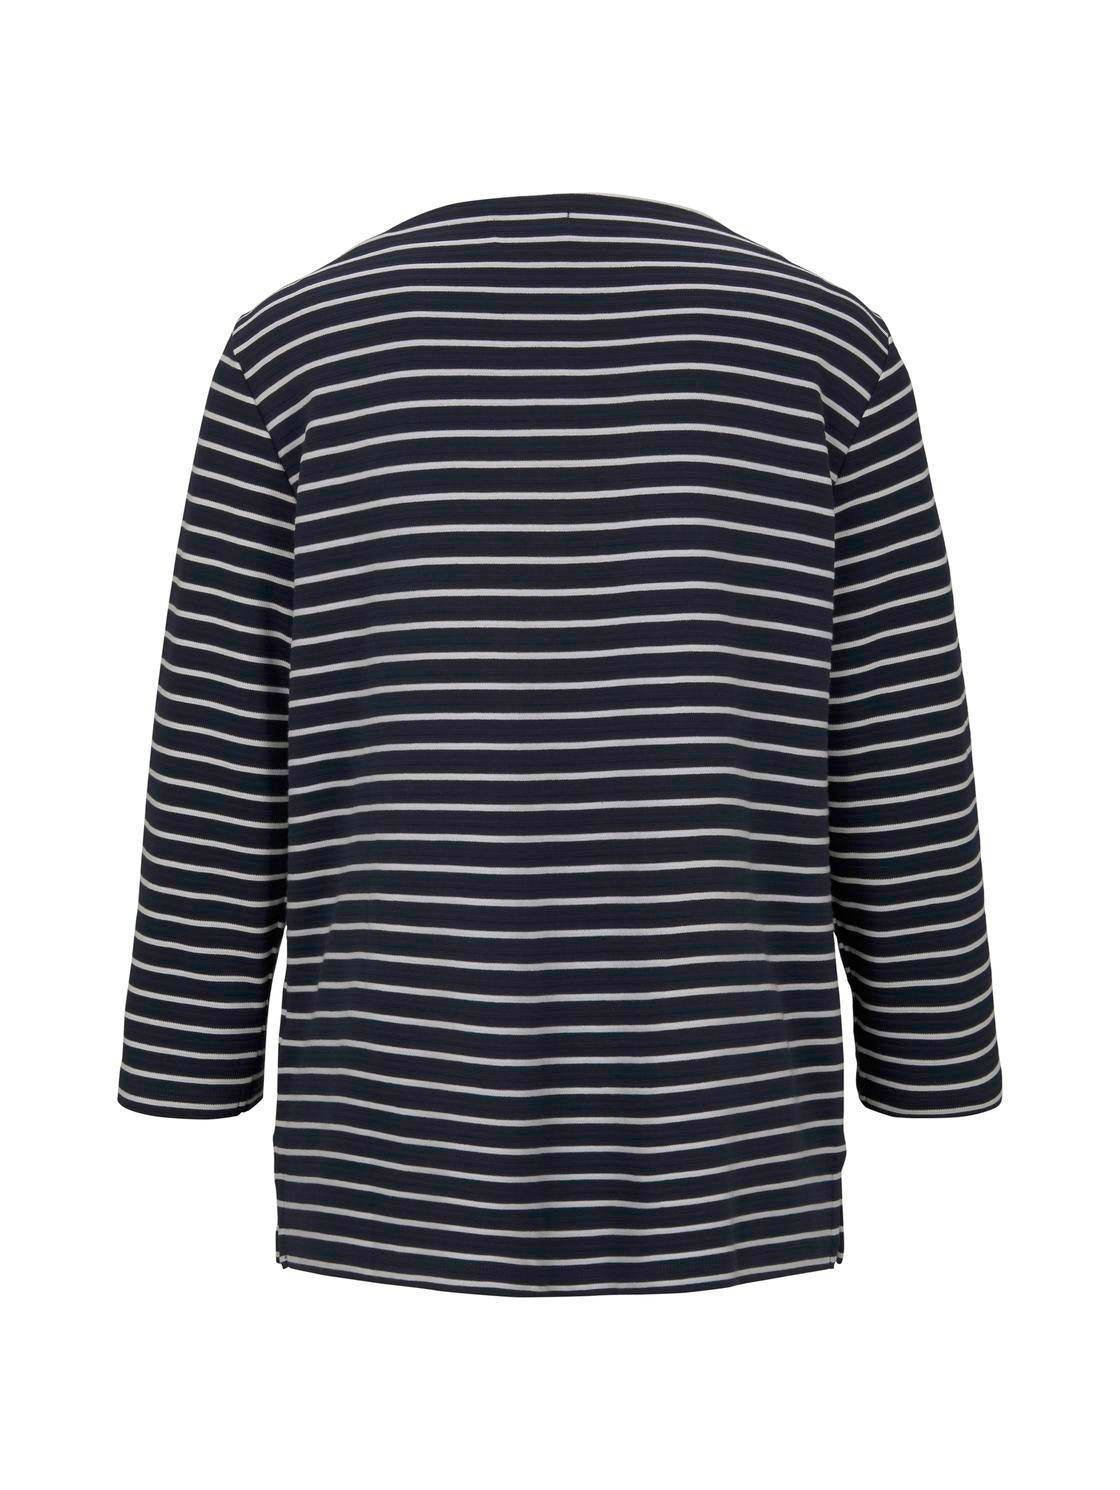 Tom Tailor gestreepte sweater blauw/wit